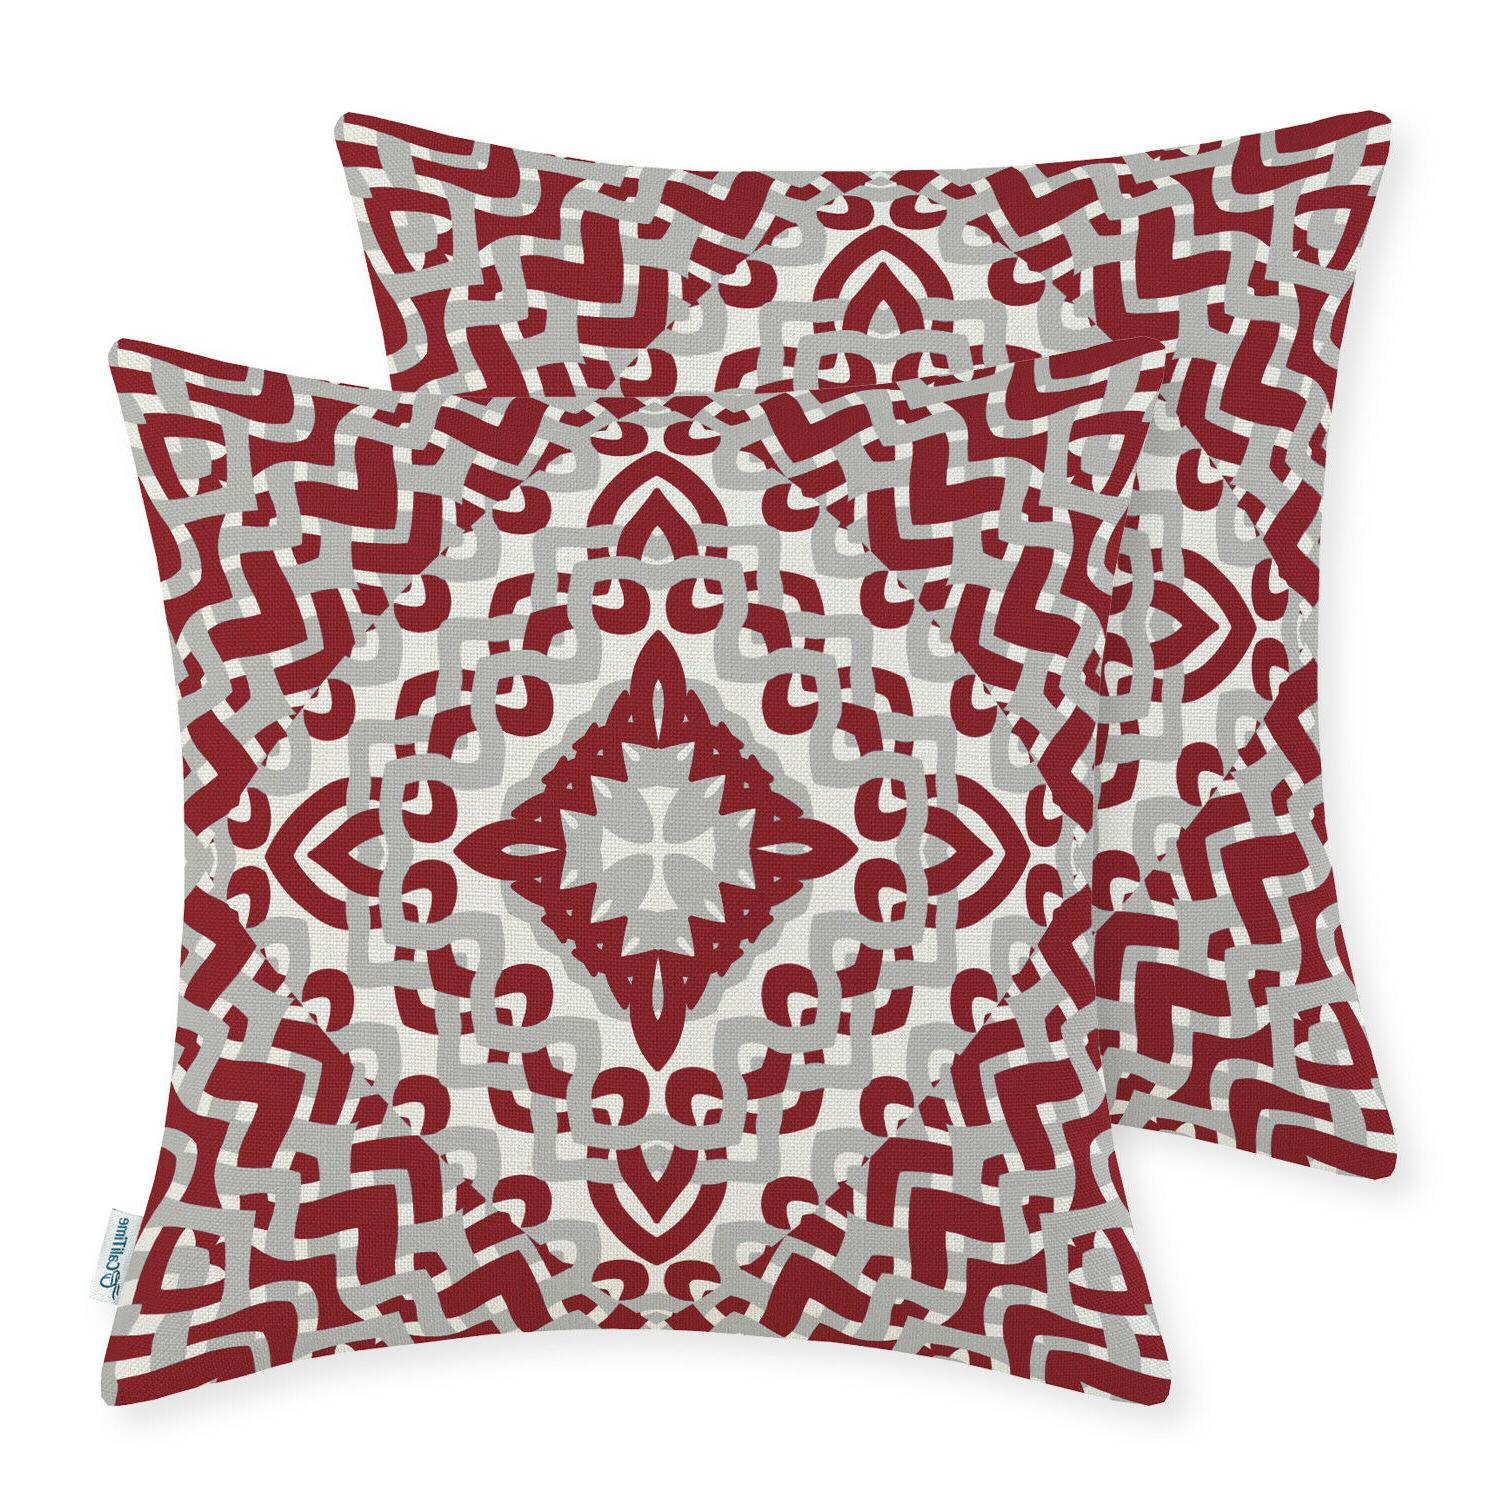 CaliTime Throw Covers Decor Geometric 18x18""